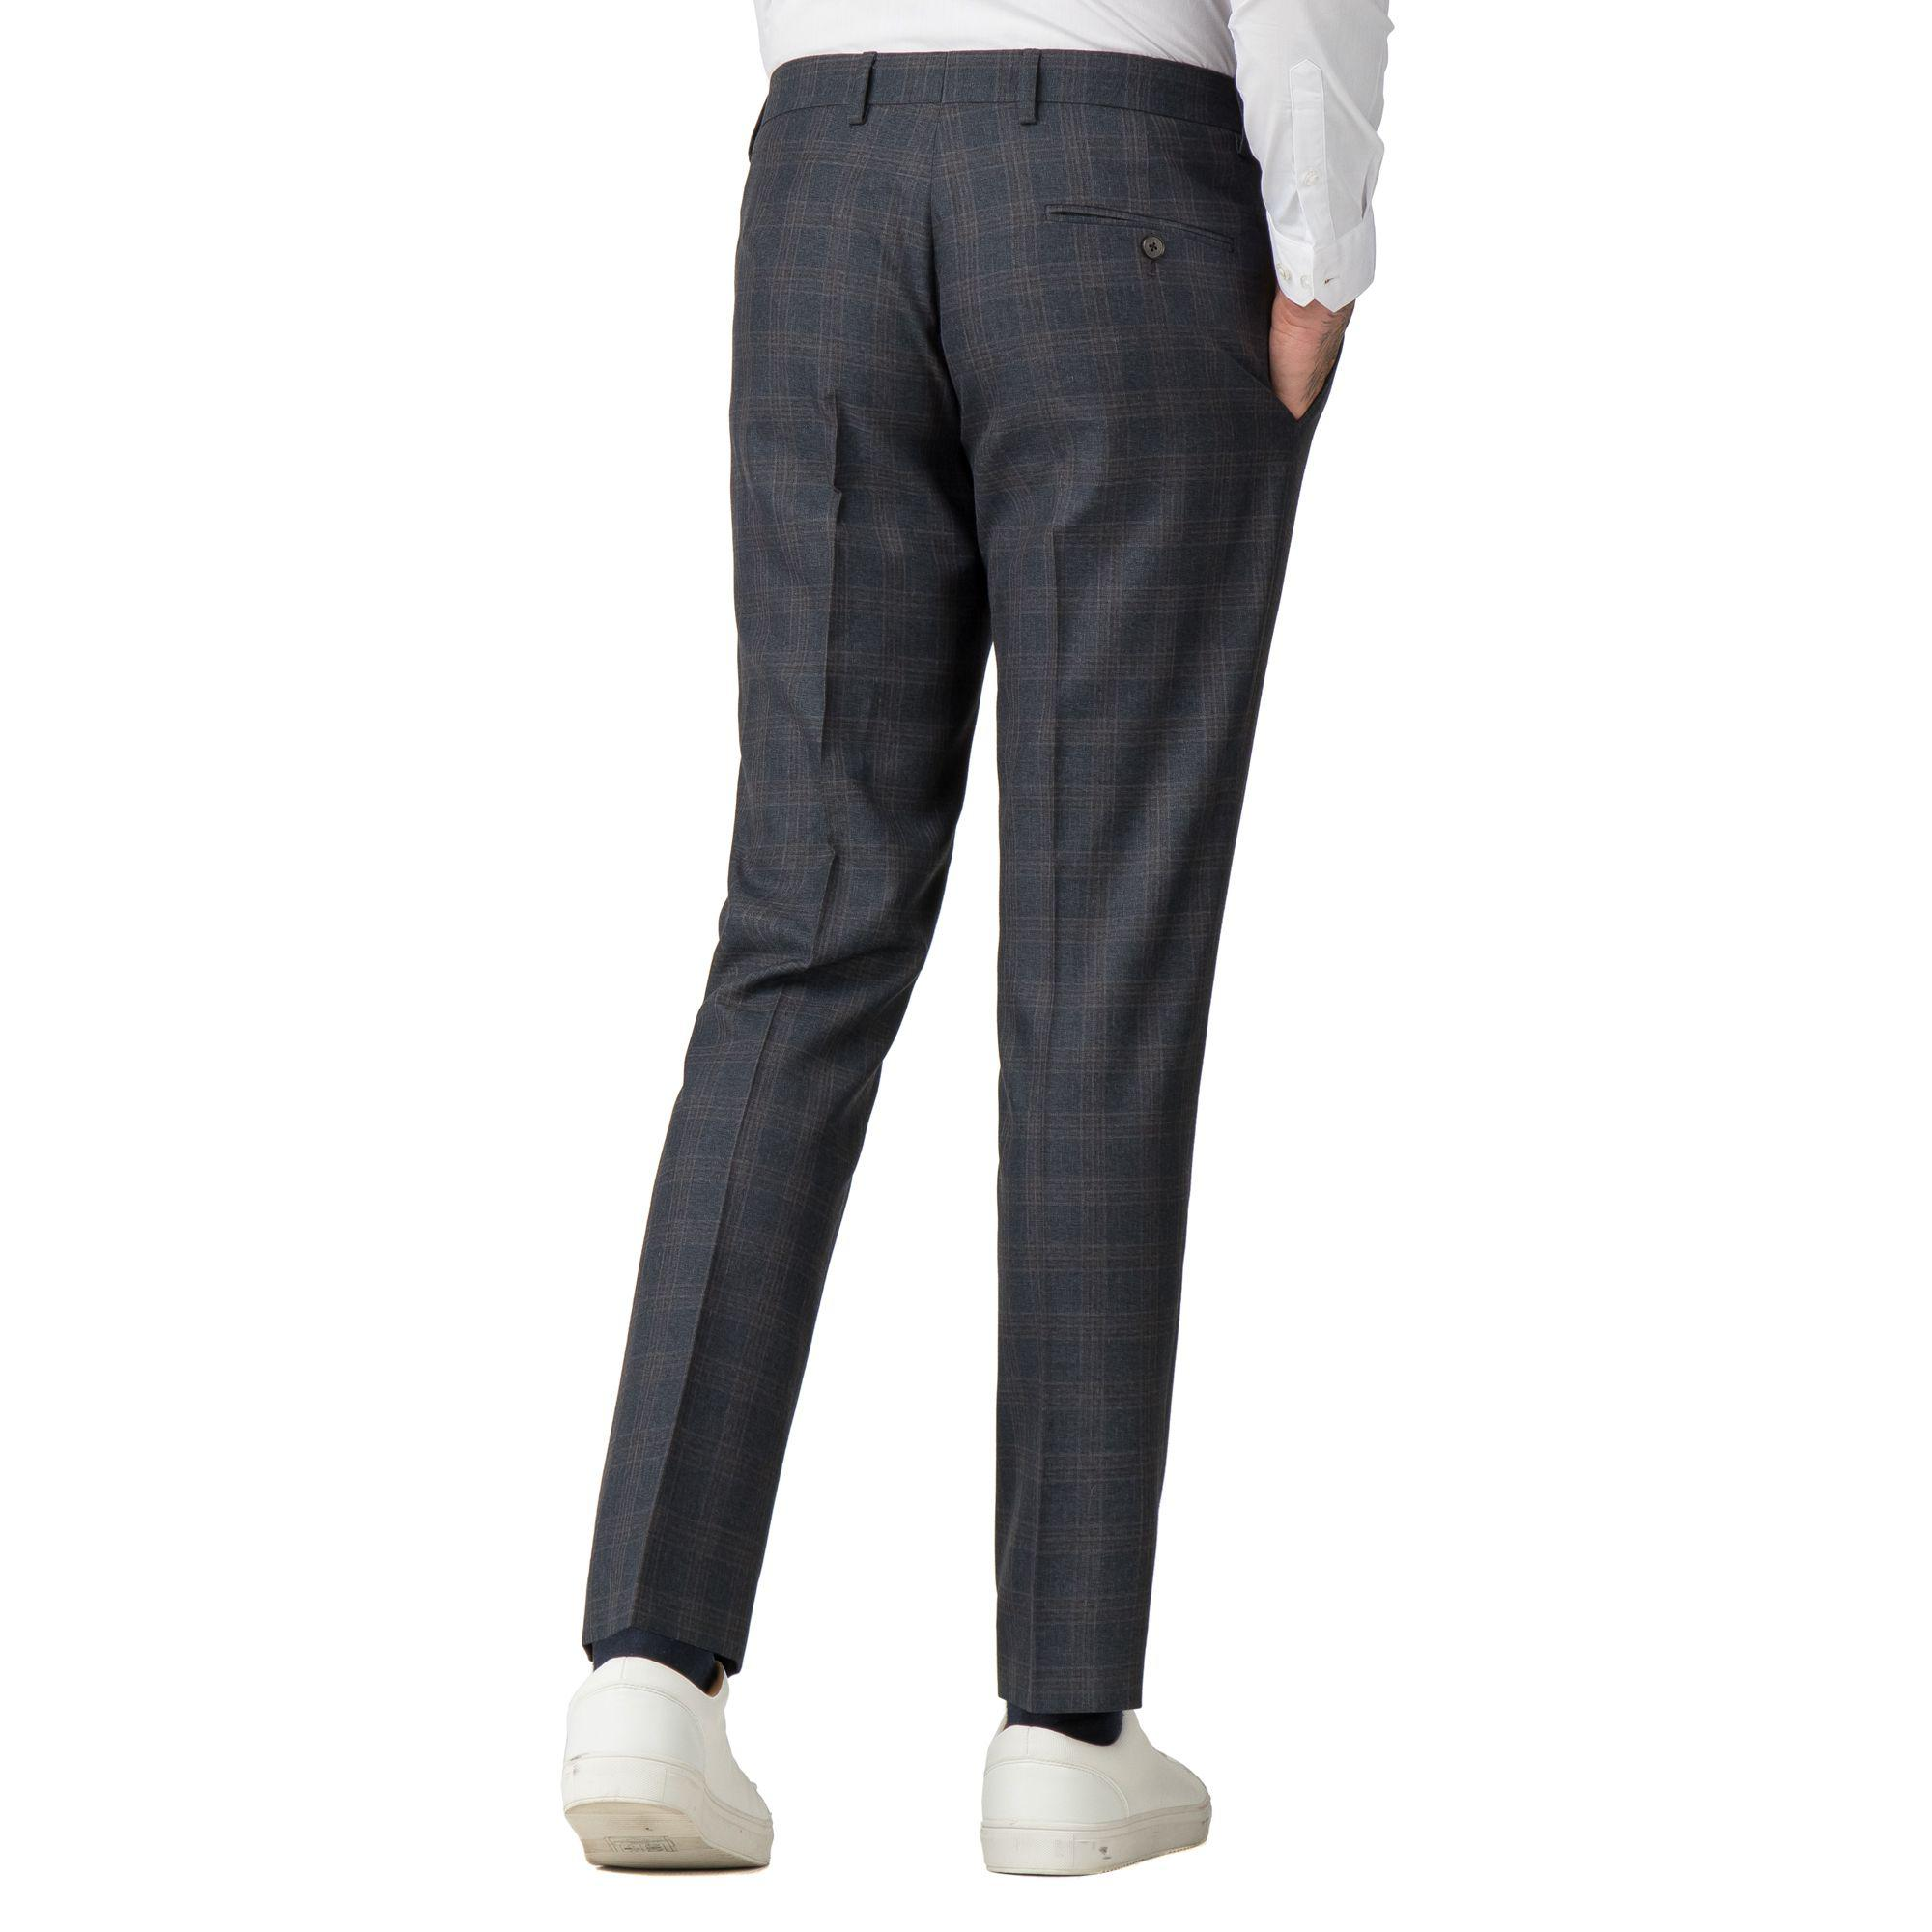 9ea911a97bc6 Red Herring - Blue Navy Rust Overcheck Skinny Fit Suit Trousers for Men -  Lyst. View fullscreen